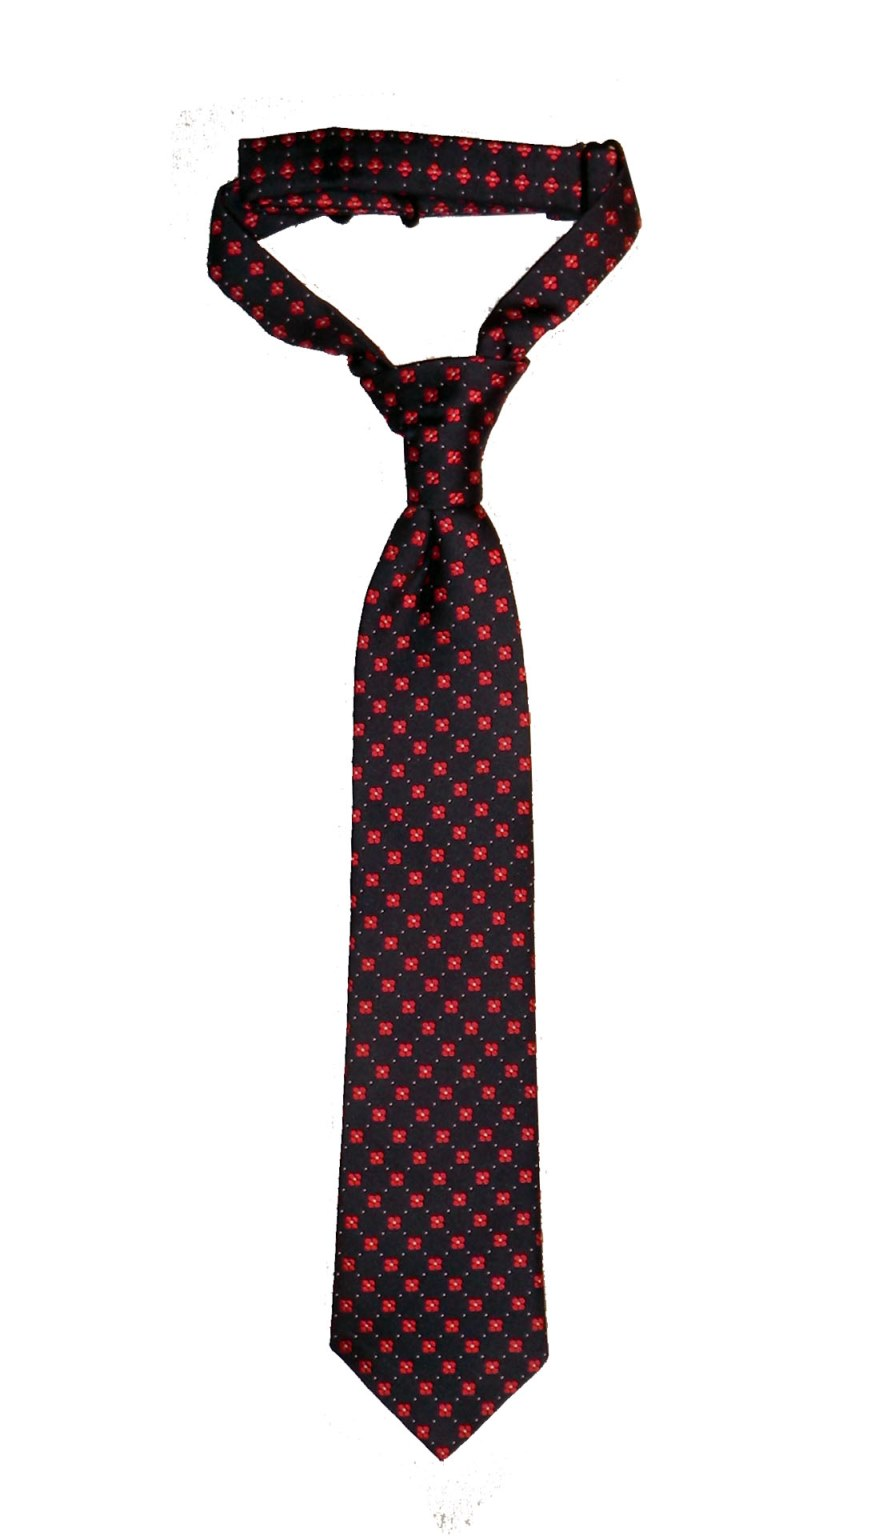 Handmade Pre-Tied Neckties for Boys by Troy James Boys (Size: Medium (1-3 yrs), Style: Red Flower)